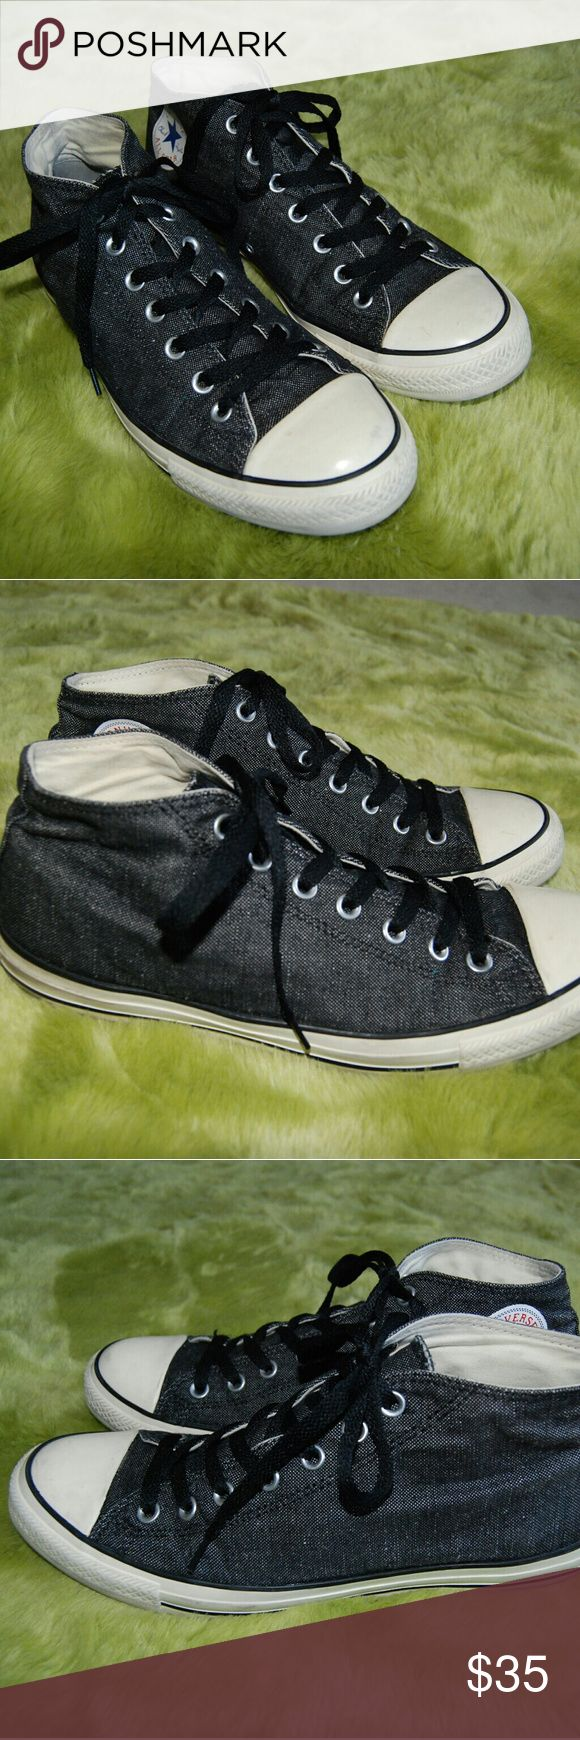 Converse All Star Black Denim high top Sneakers 10 Mens high top Sneakers Converse chuck taylor Black Denim Gently worn, great condition Shows normal wear Some scuffs and marks Men's size 10 Woman's size 12 Converse Shoes Sneakers